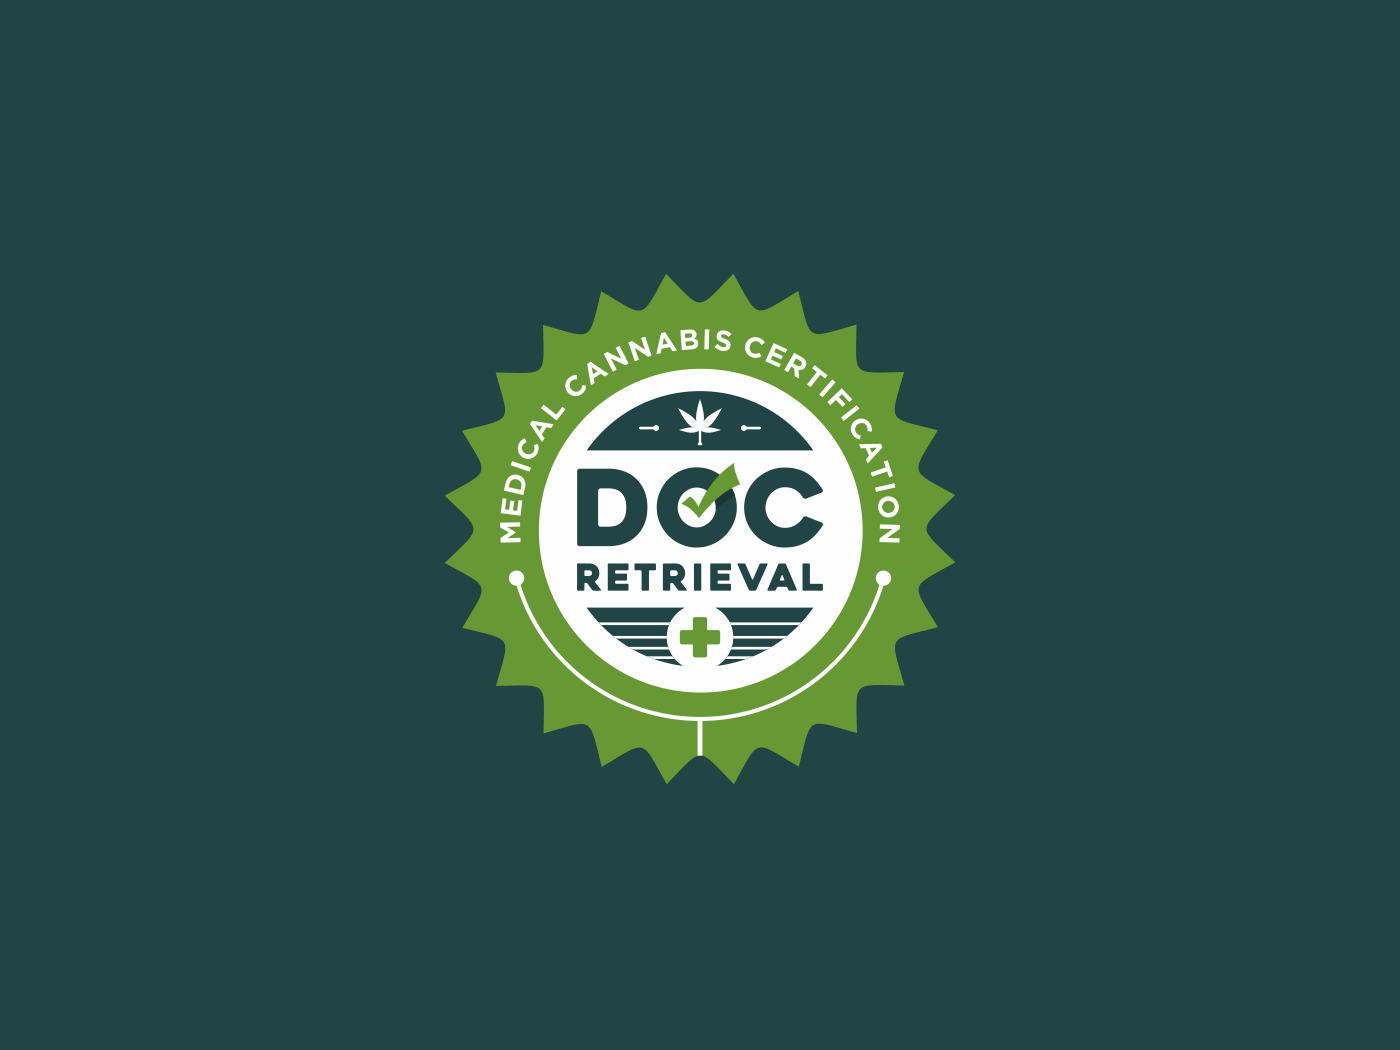 Doc Retrieval Logo vector design logo a day medical health services emblem logo certification logo cannabis